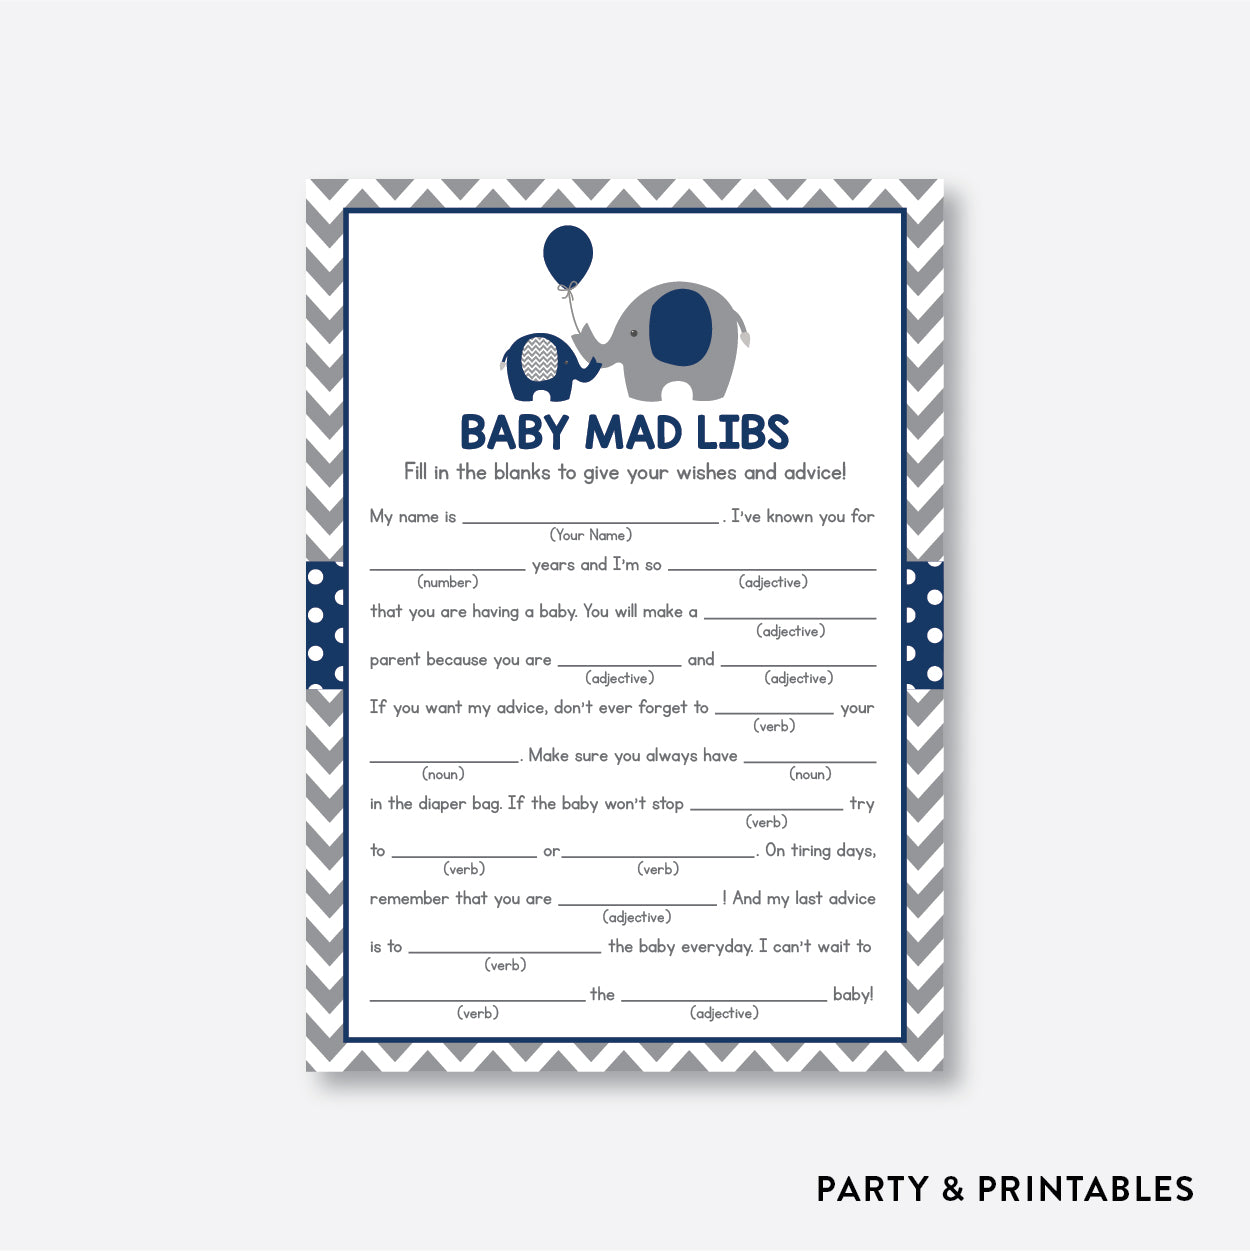 Elephant Mad Libs / Non-Personalized / Instant Download (SBS.41)